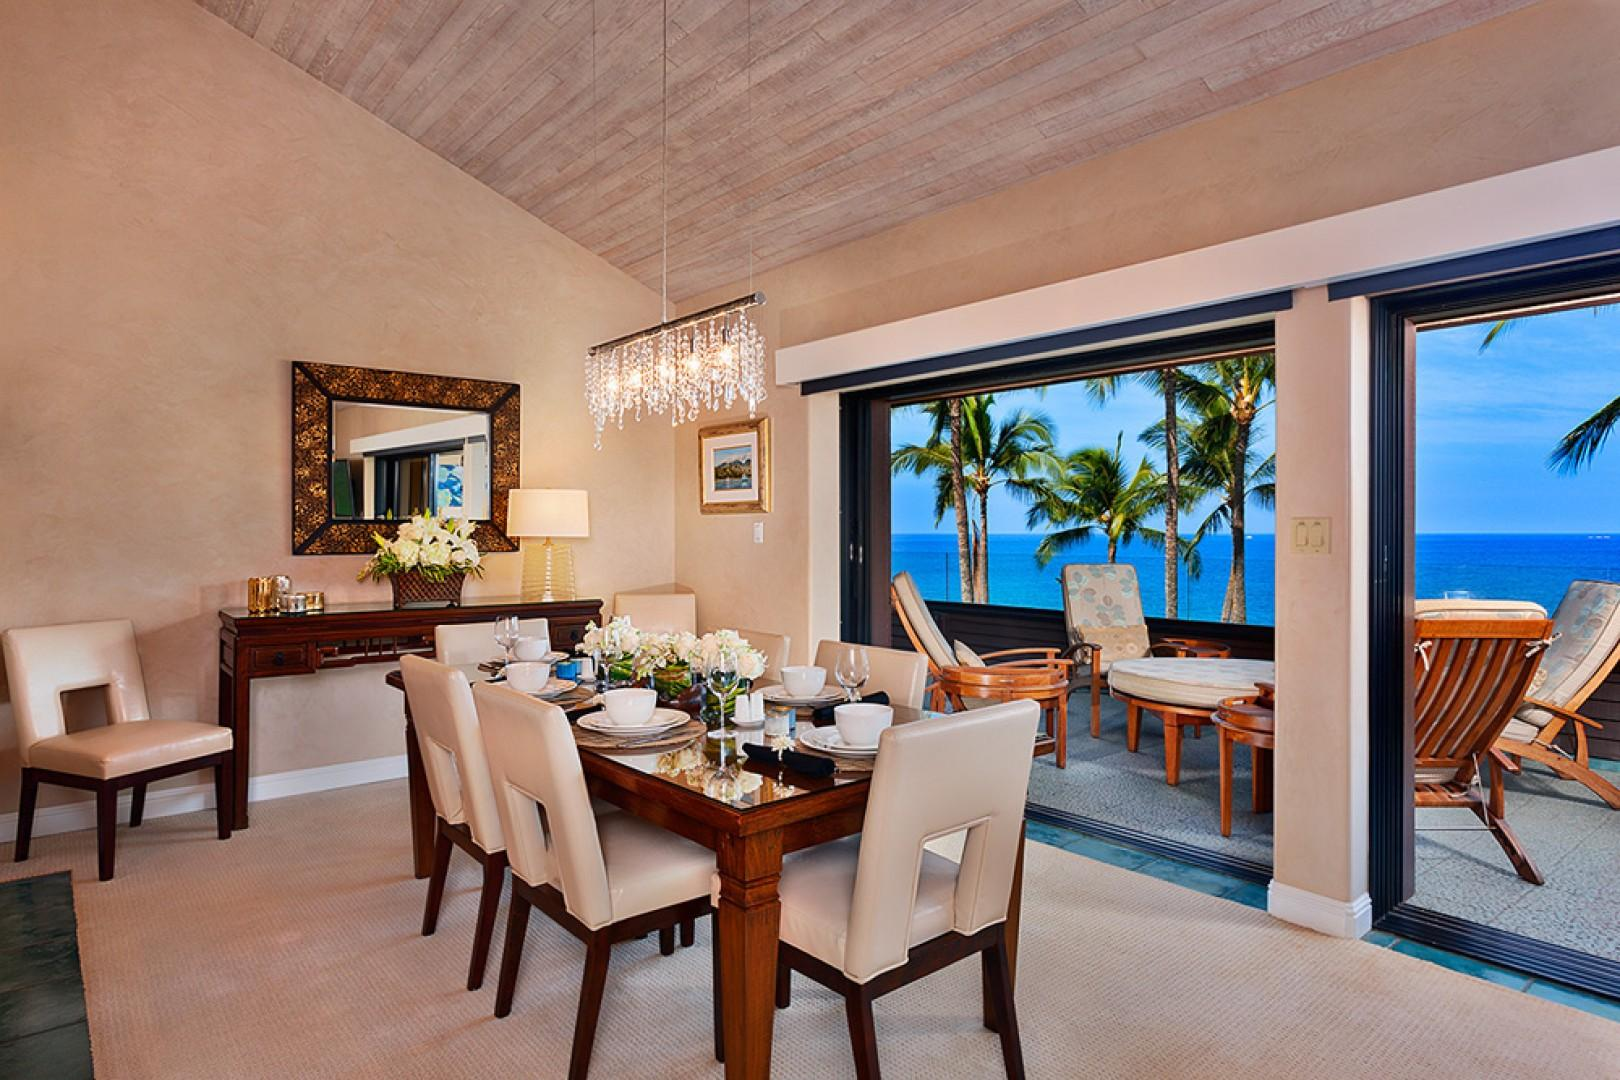 Sunny Surf E301 - Indoor Dining For Up To Eight Guests with Full Panoramic Ocean and Beach View, Vaulted Ceilings and Pocket Sliding Floor to Ceiling Glass Doors